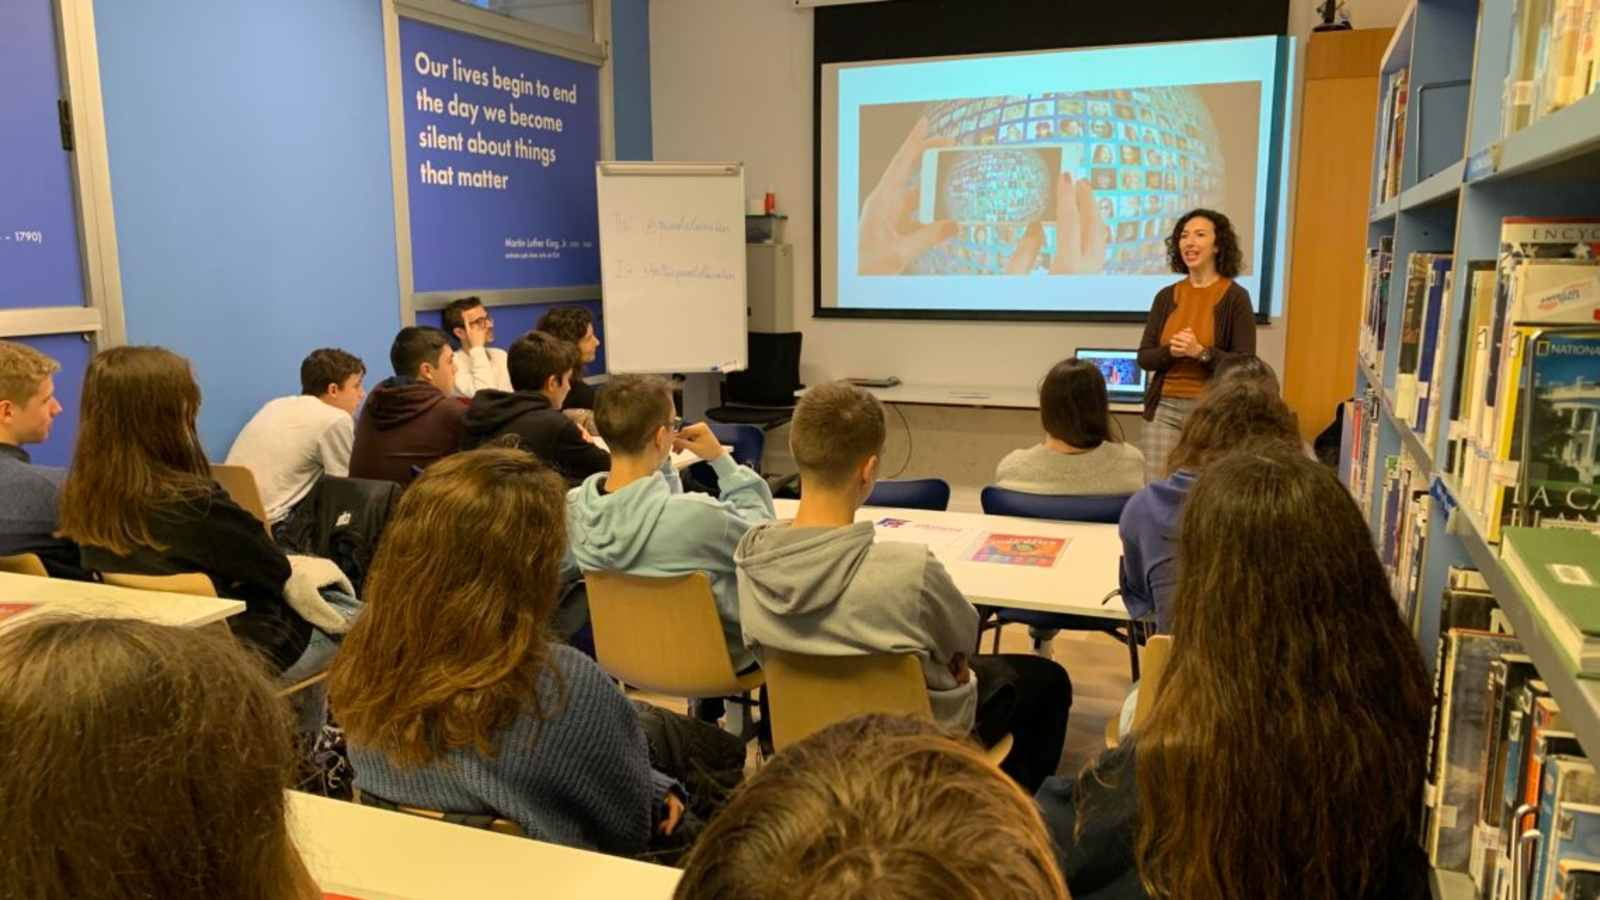 From October to December 2019, the network of American Spaces in Spain (in Barcelona, Valencia and Madrid) organized a series of media literacy workshops for high school students and teachers with the support of U.S. Mission Spain. Led by two university professors, the program taught young people skills and tools to detect misinformation circulating on the Internet and on social networks in particular. The workshops also promoted the responsible and ethical use of social networks, and highlighted the importance of being well-informed citizens. Credit: U.S. Embassy of Spain